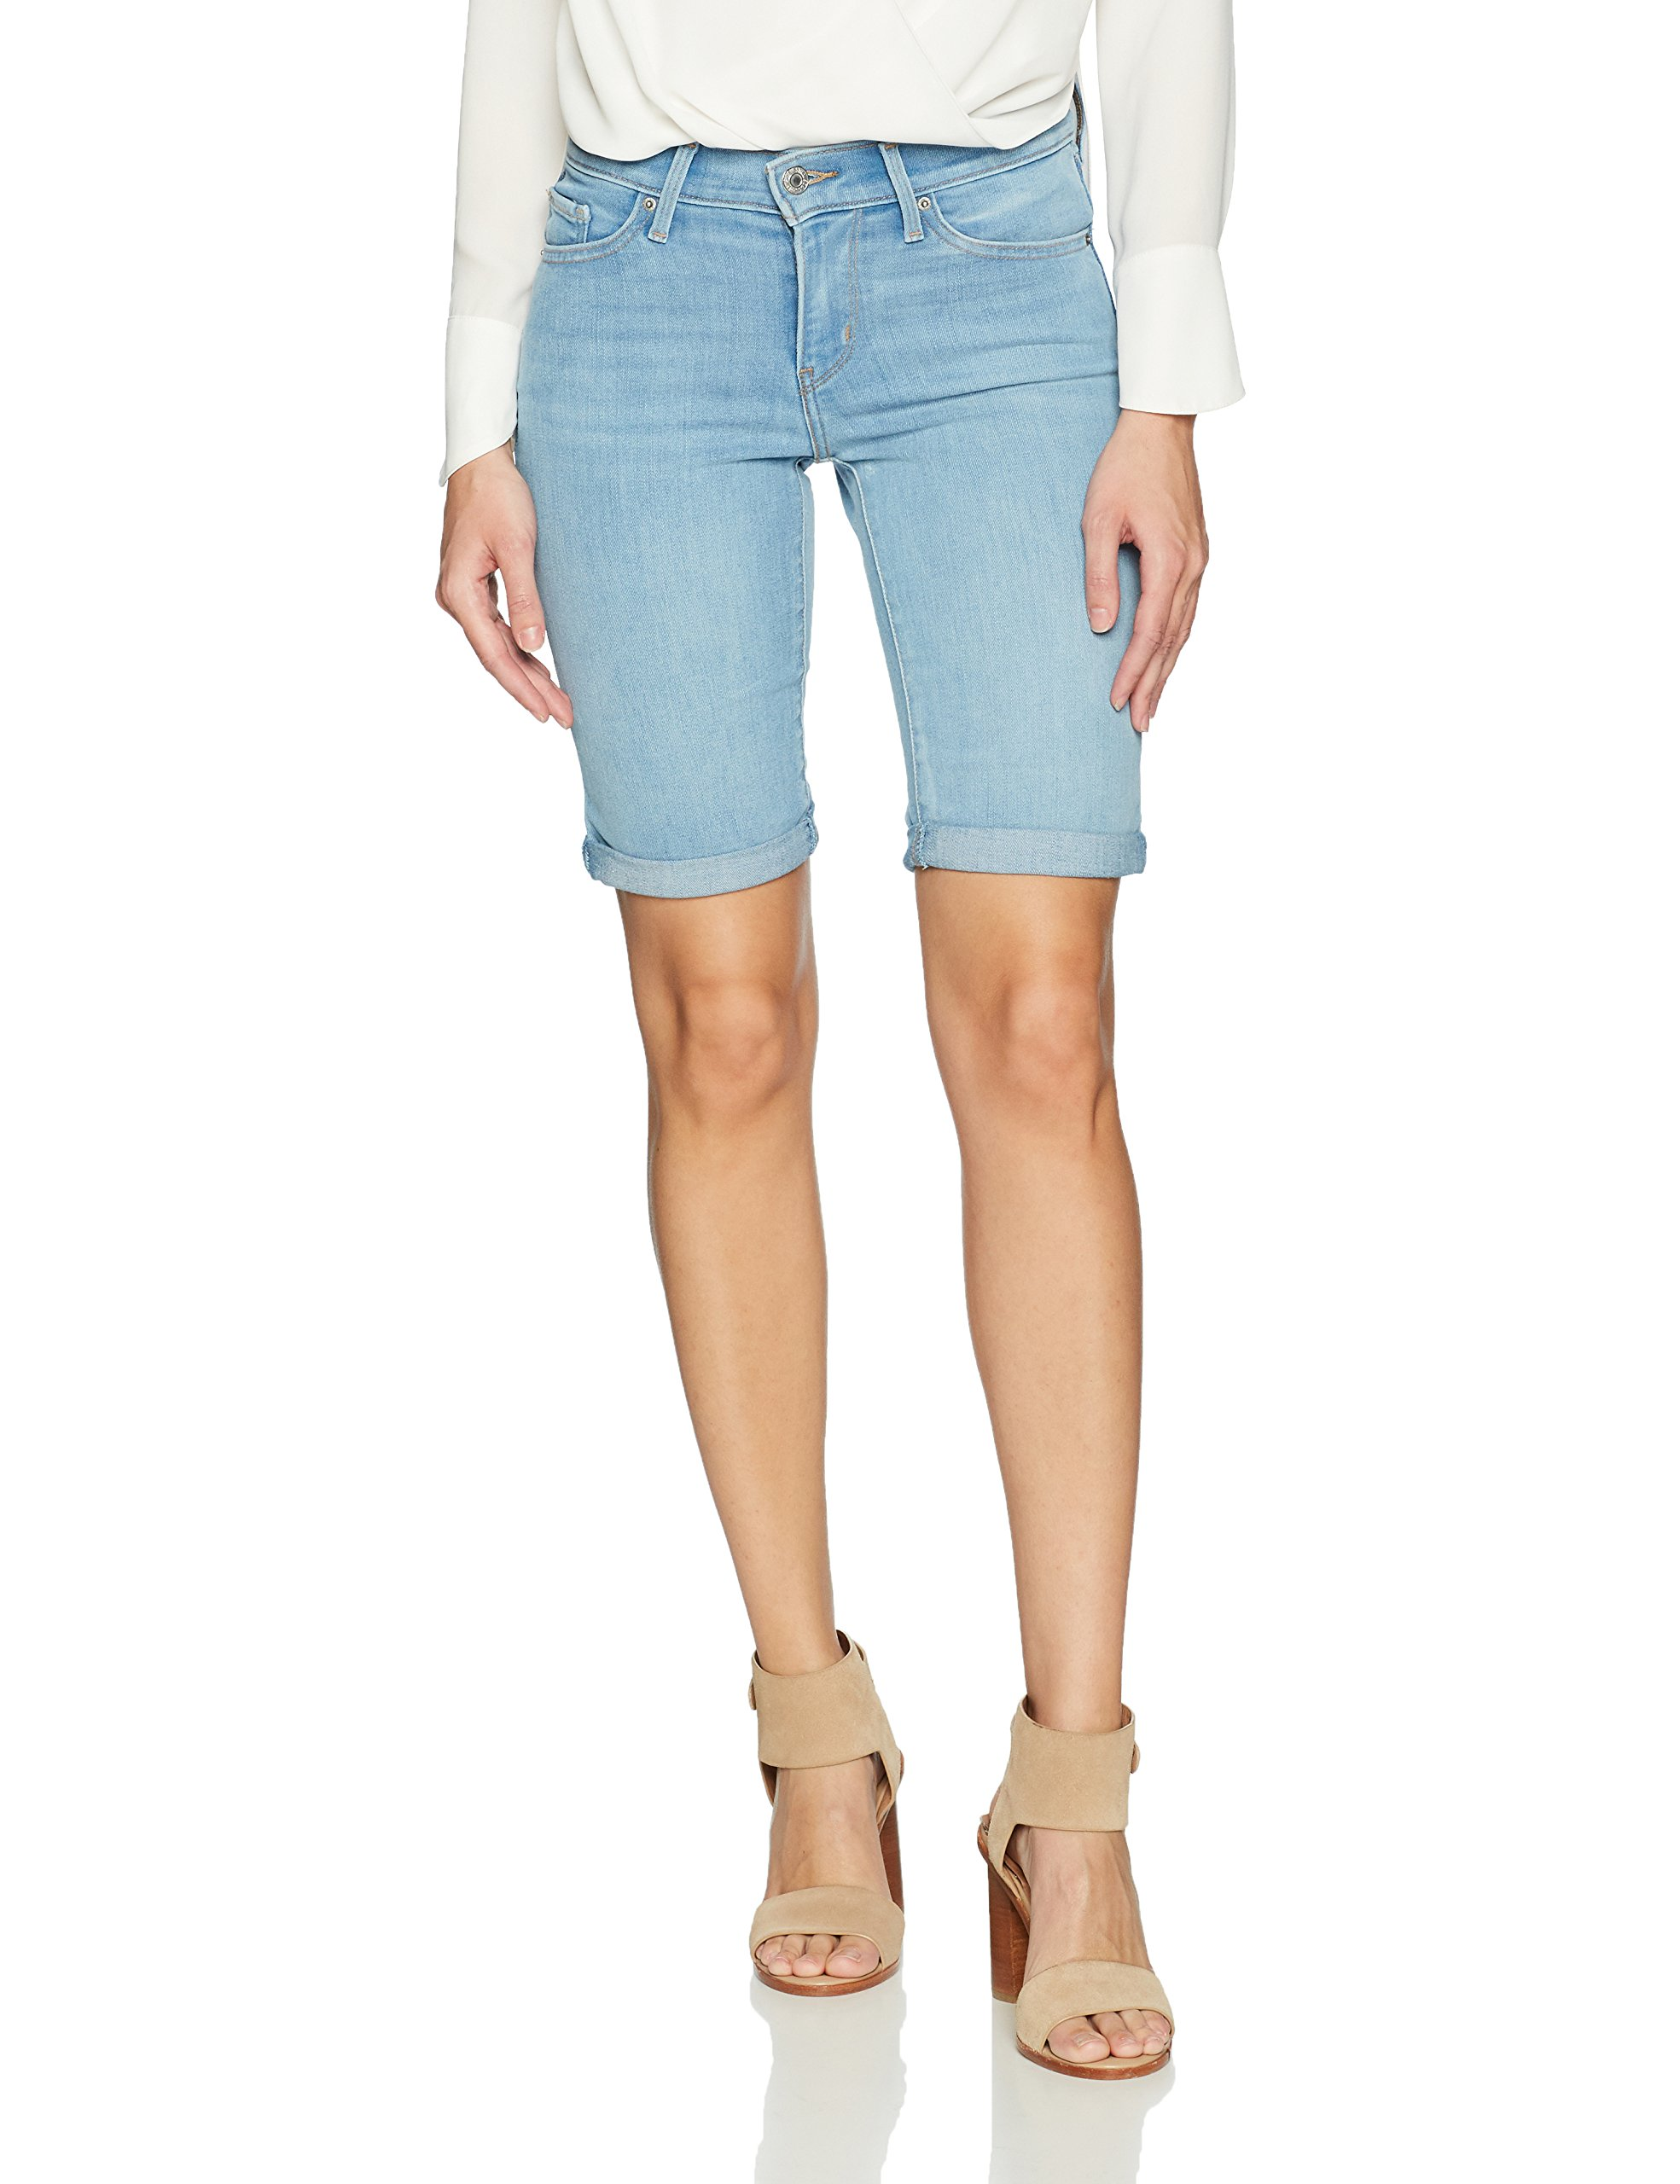 Levi's Women's Bermuda Short's, Surfside Way, 32 (US 14)